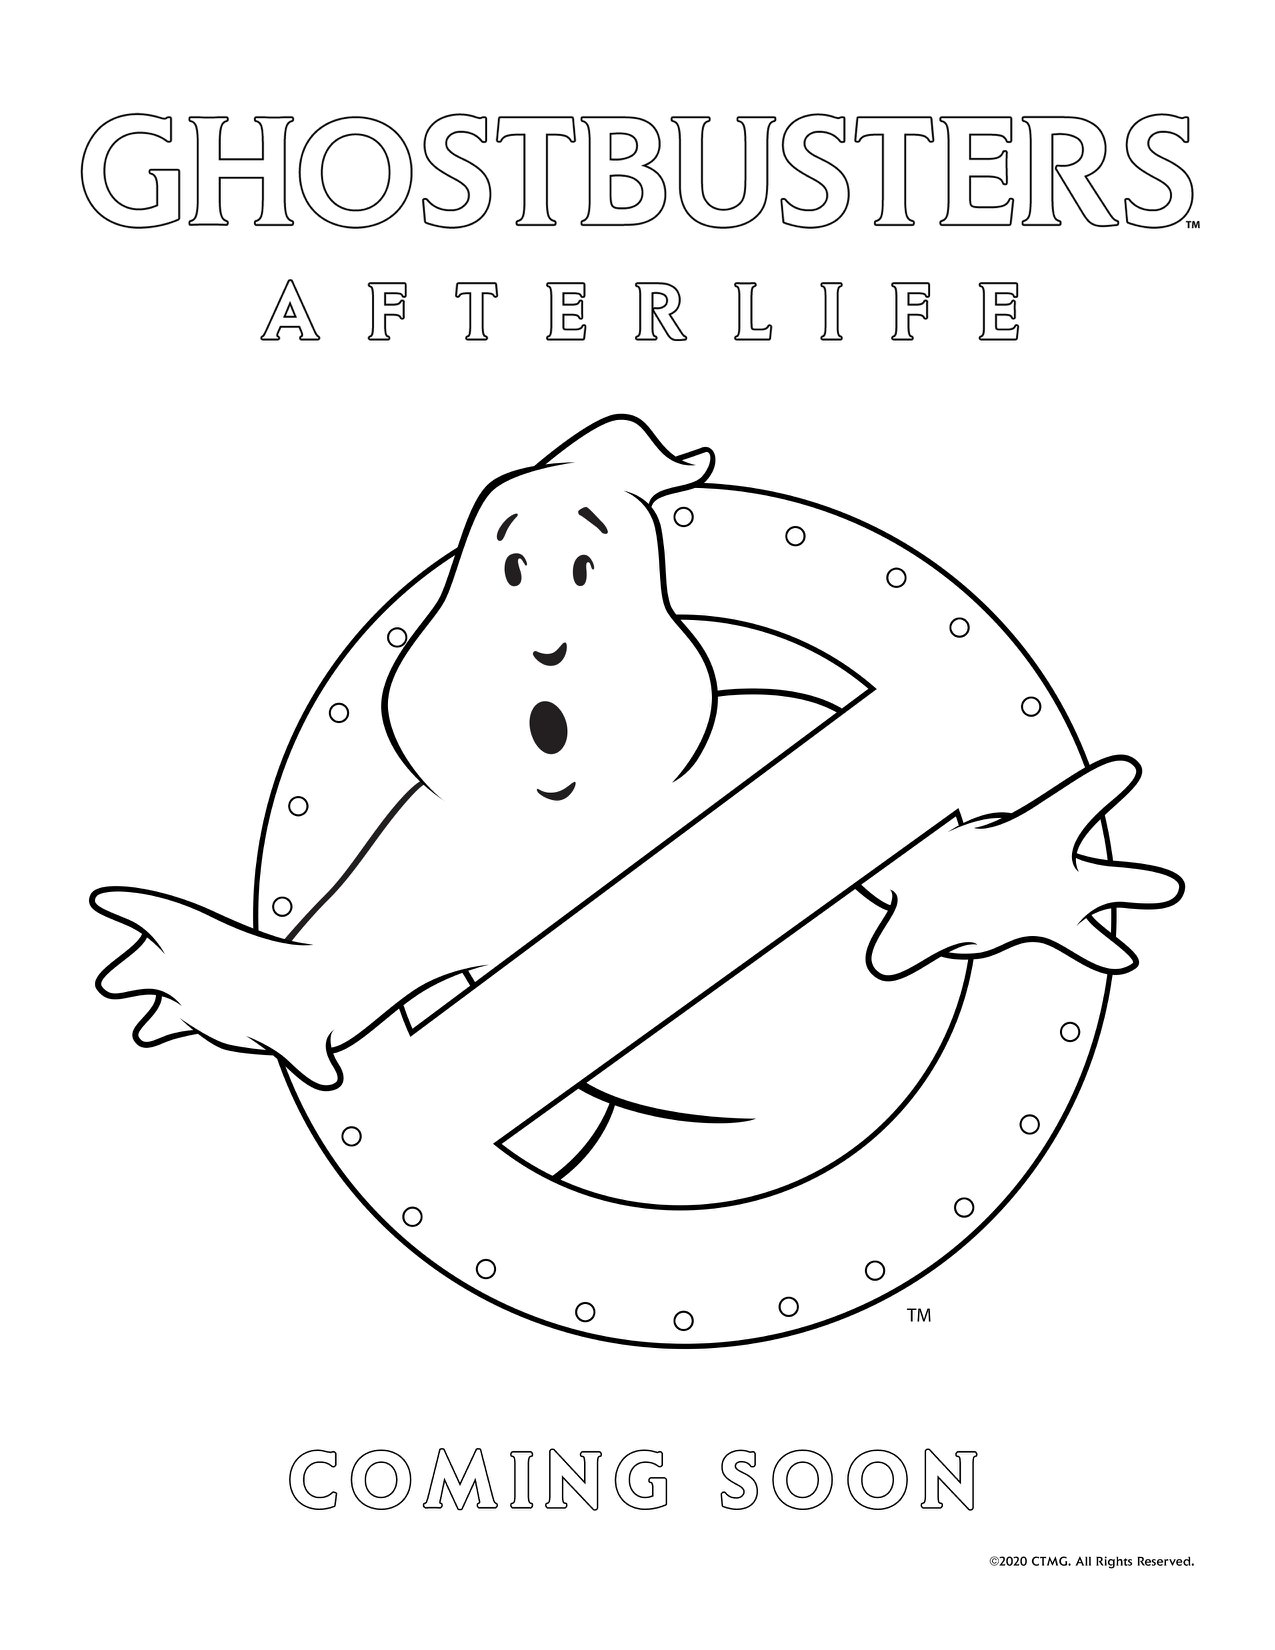 Ghostbusters Car Coloring Page - Free Ghostbusters Coloring Pages ...   1650x1275